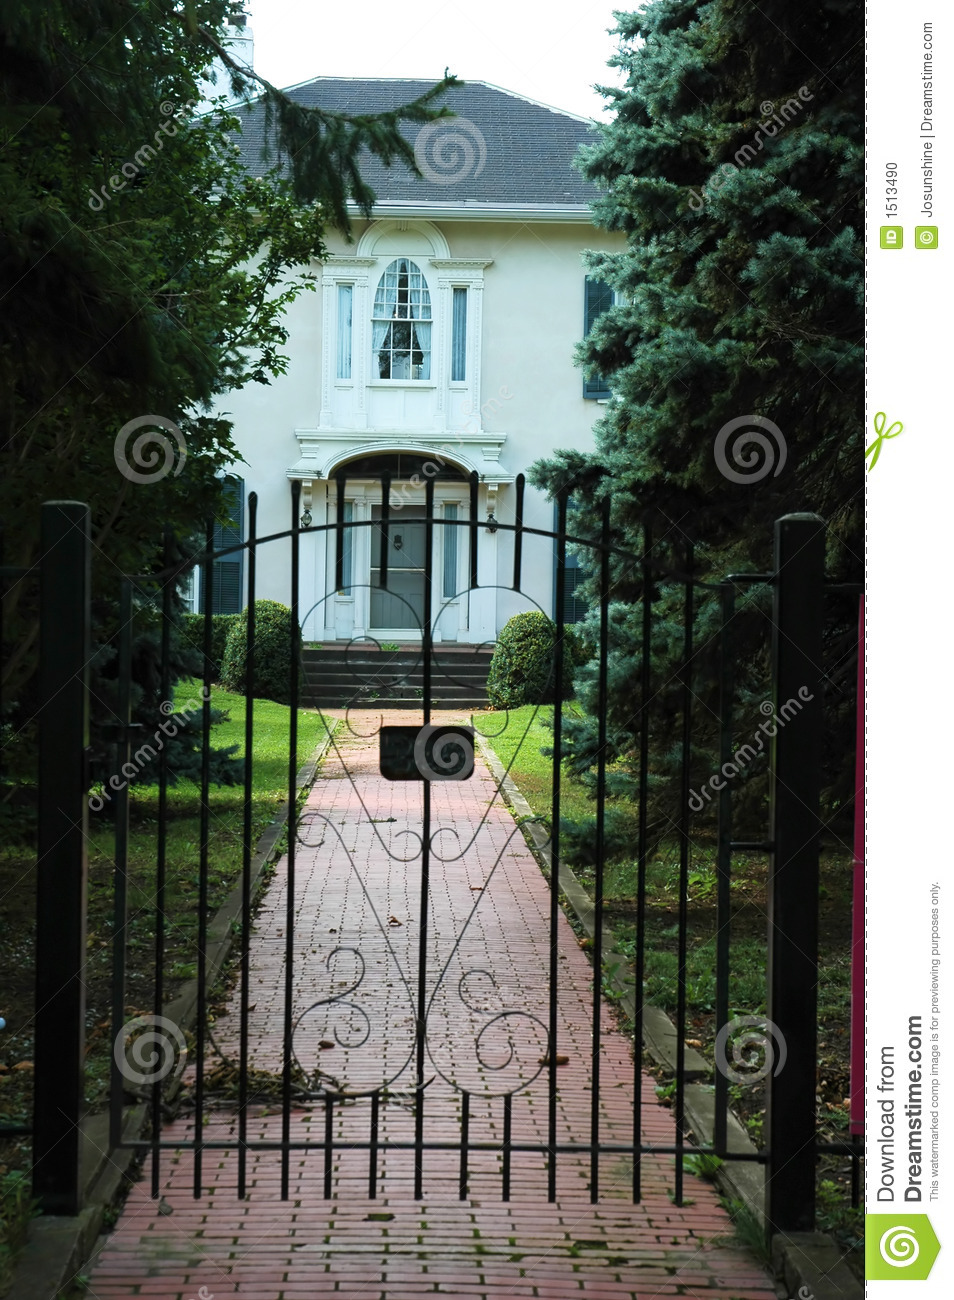 Iron gate house entrance